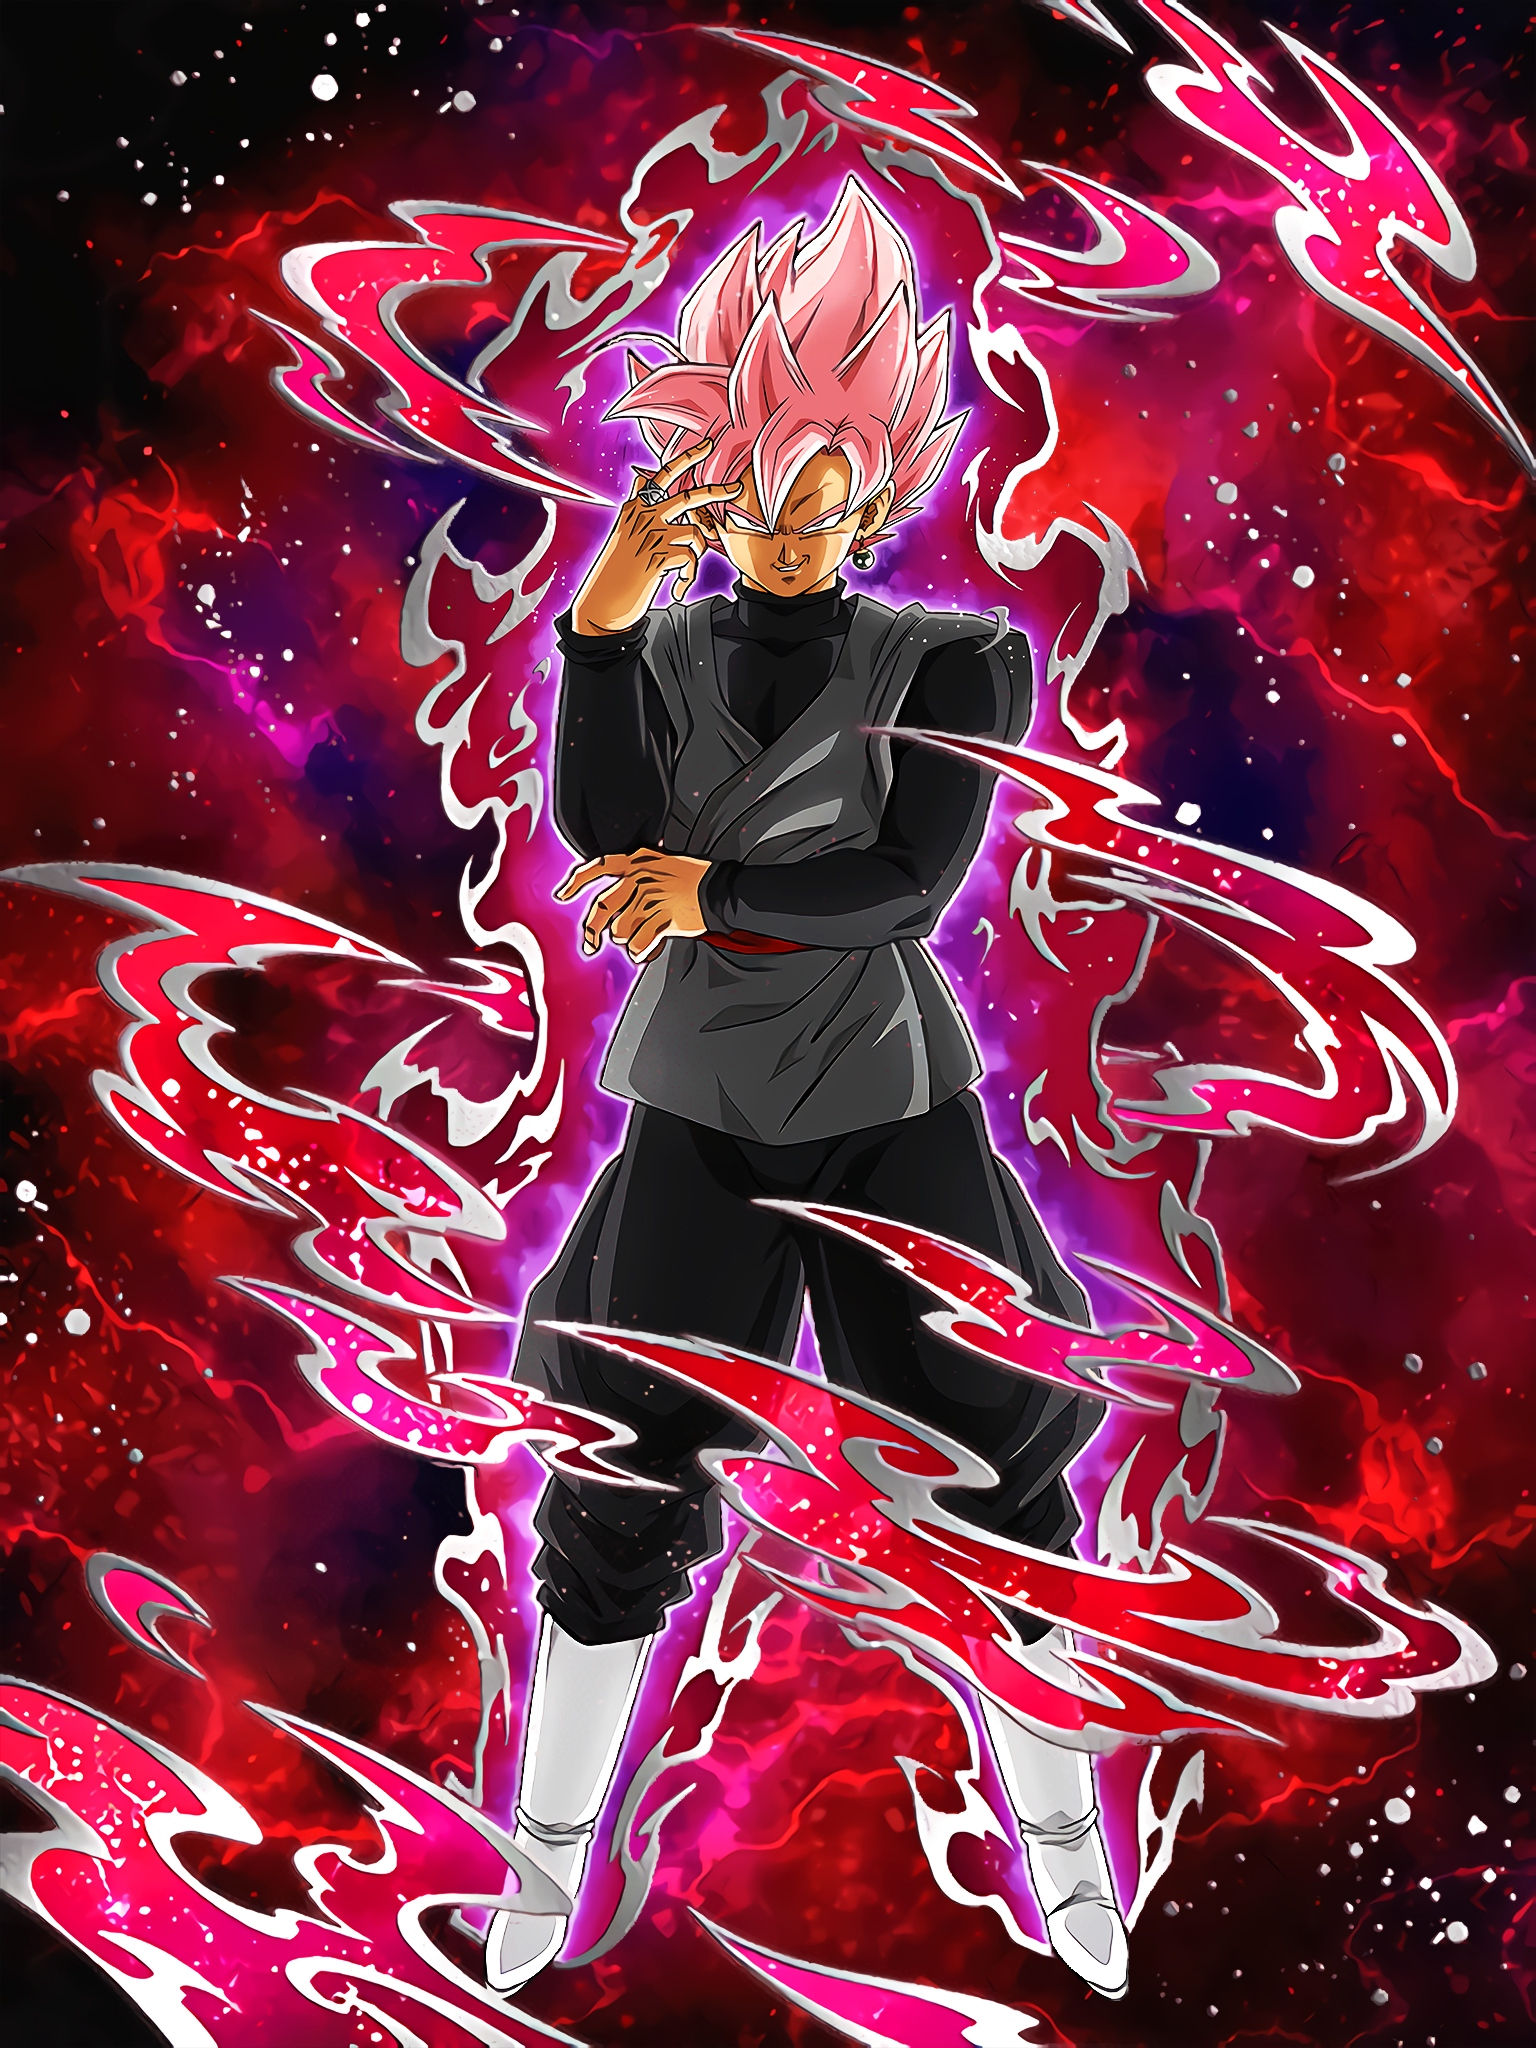 Beautiful Grasp Goku Black Super Saiyan Rosé Art (Dragon Ball Z Dokkan Battle).jpg